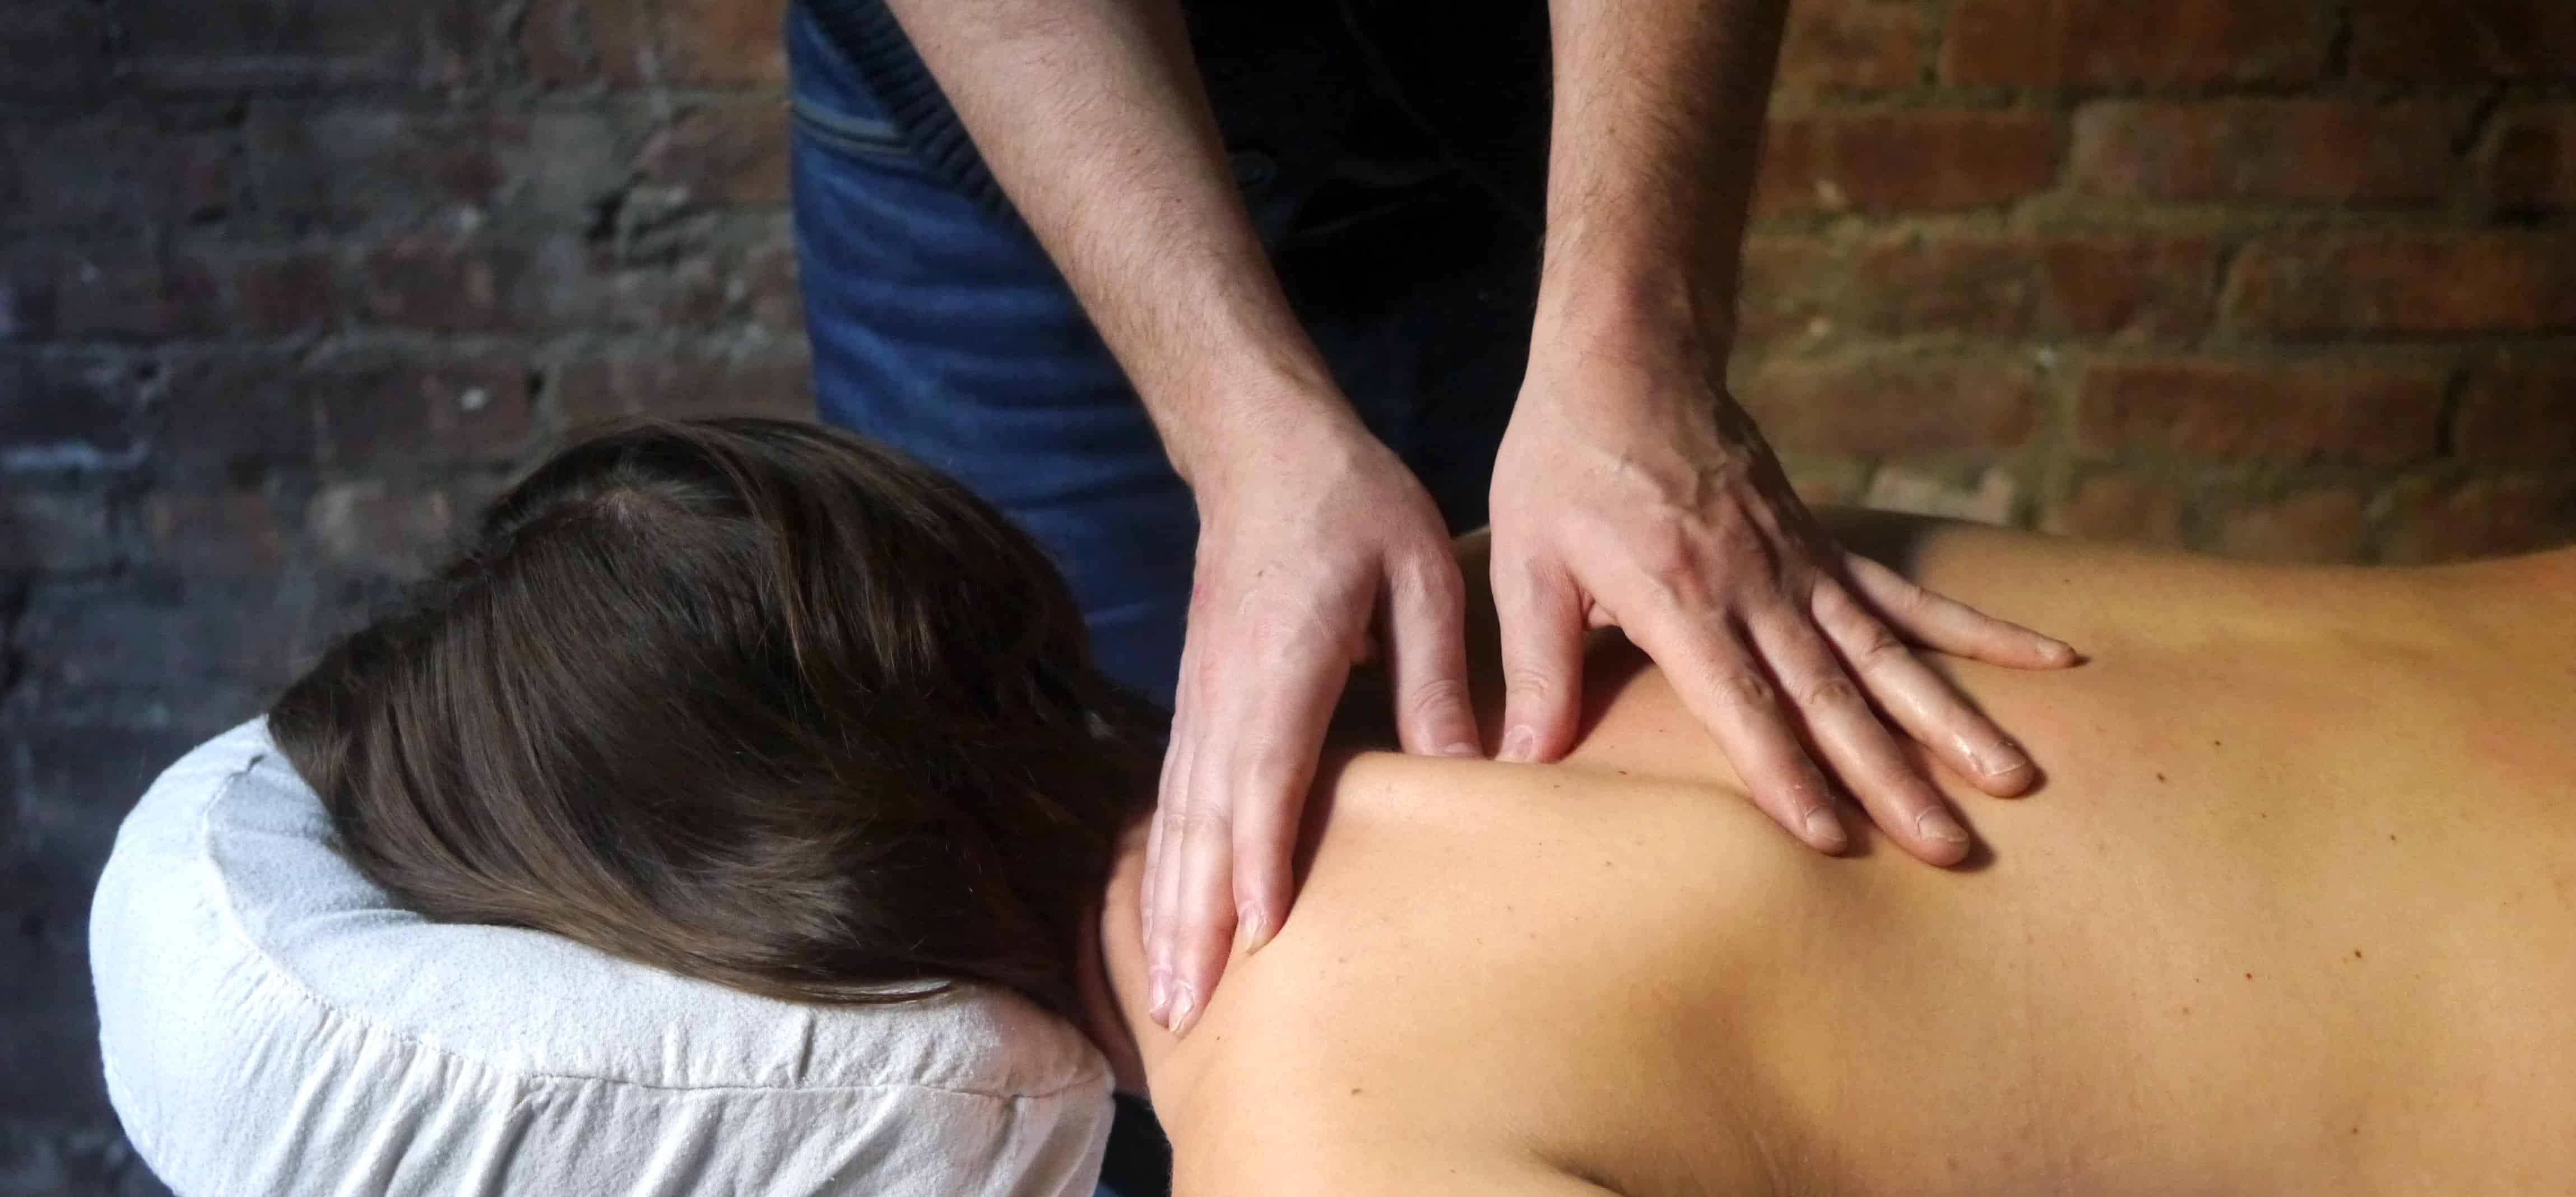 Medical Massage in New York @ Bodyworks DW by owner David Weintraub - offering medical massage in midtown and fidi